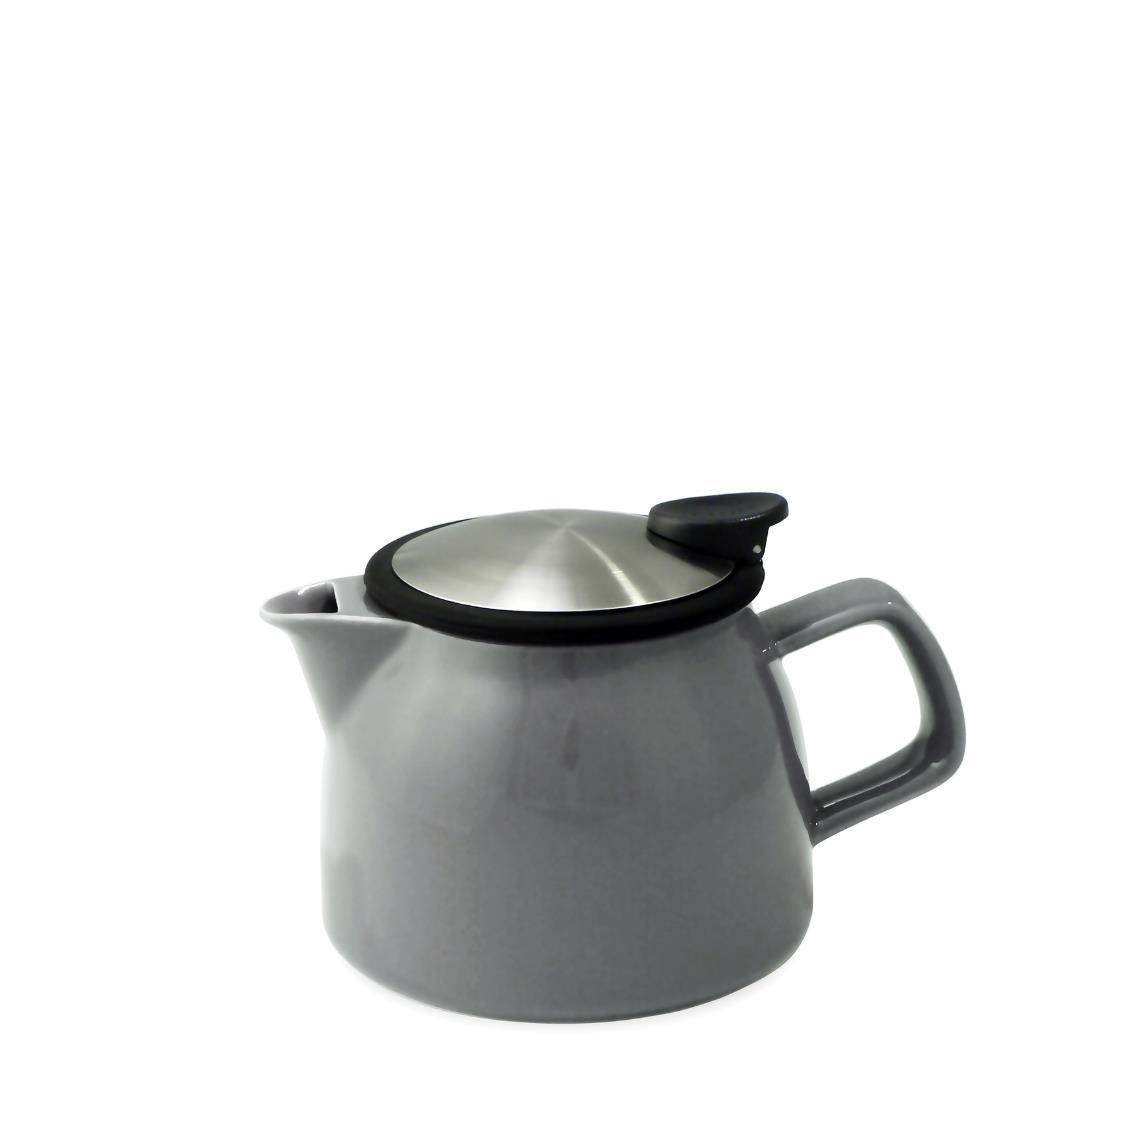 Bell Teapot with Basket Infuser 470ml FL543-GRY